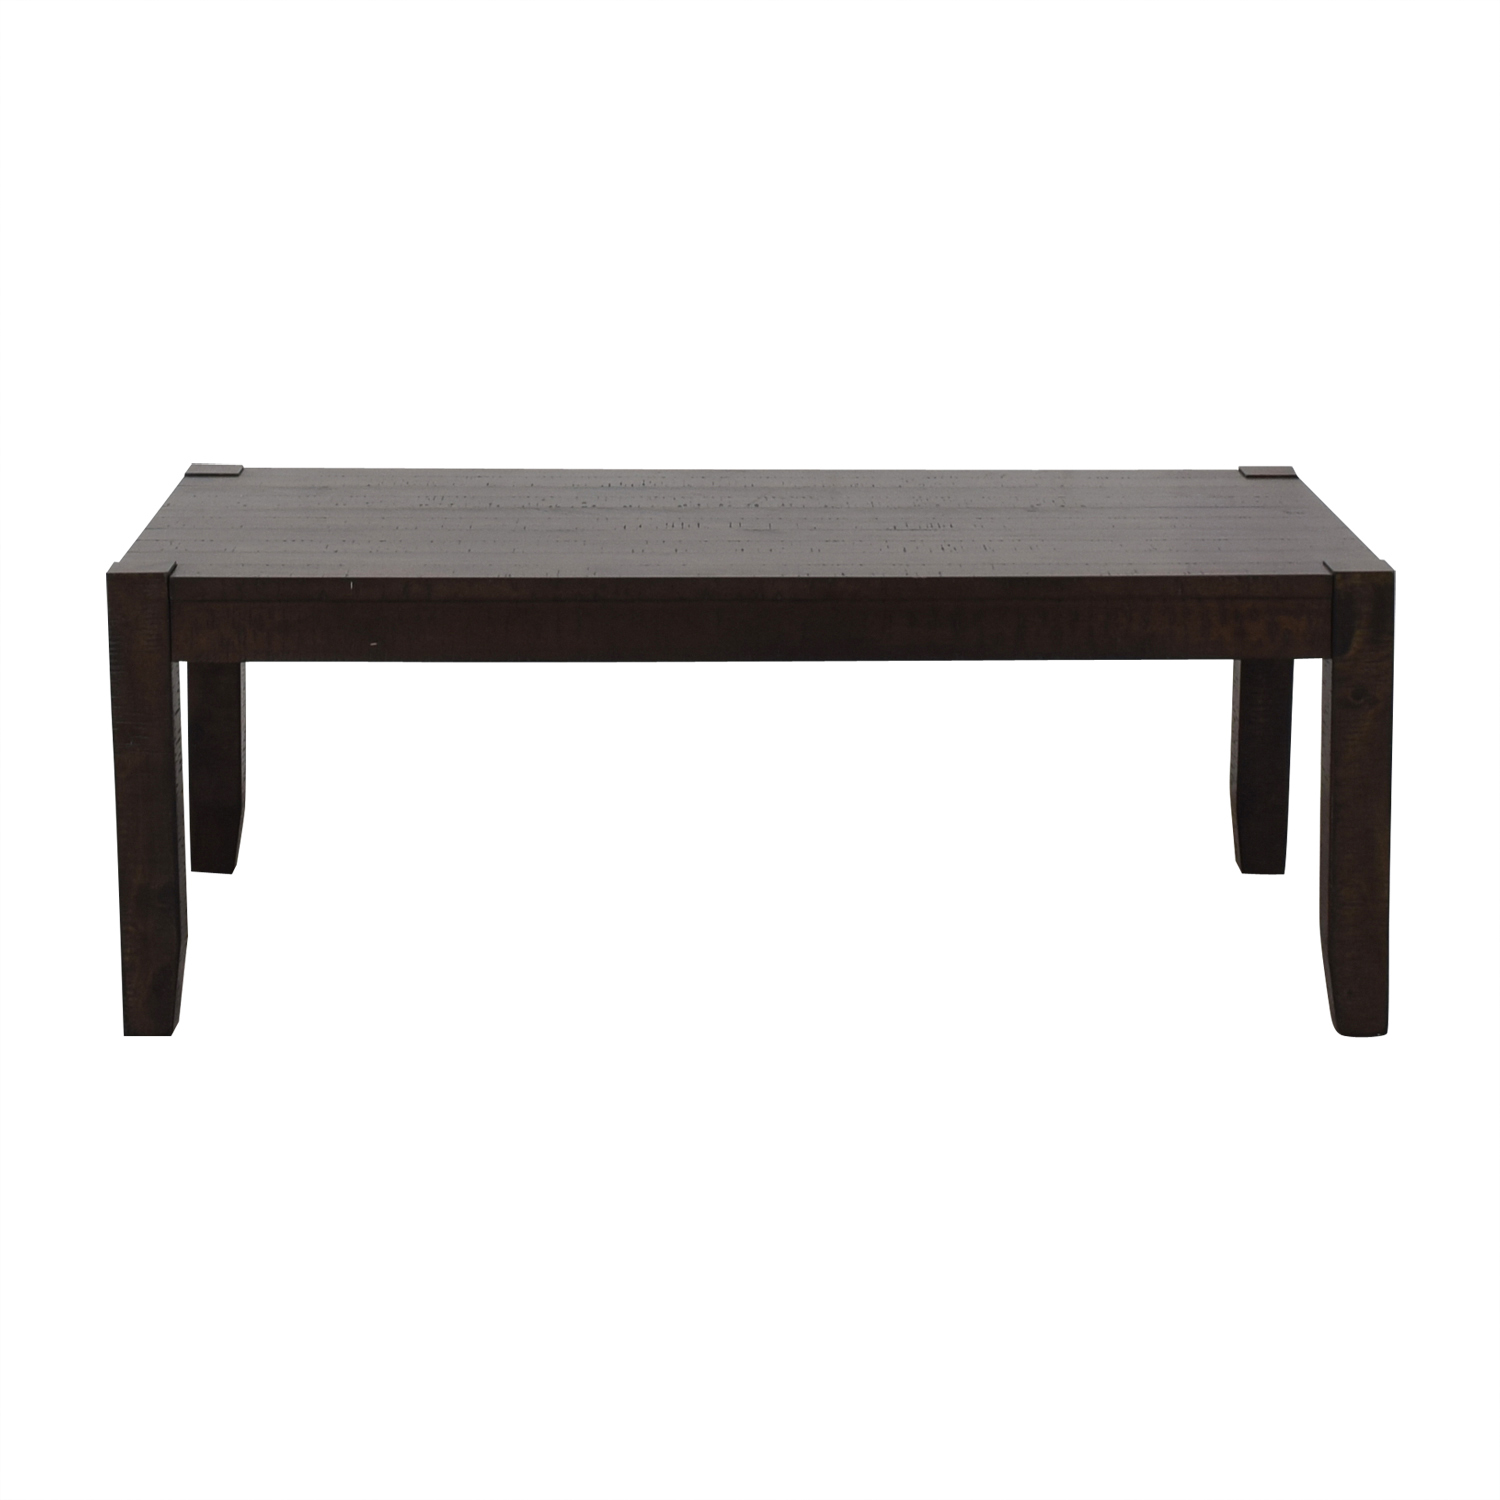 Bob's Discount Furniture Bob's Discount Furniture Coffee Table discount